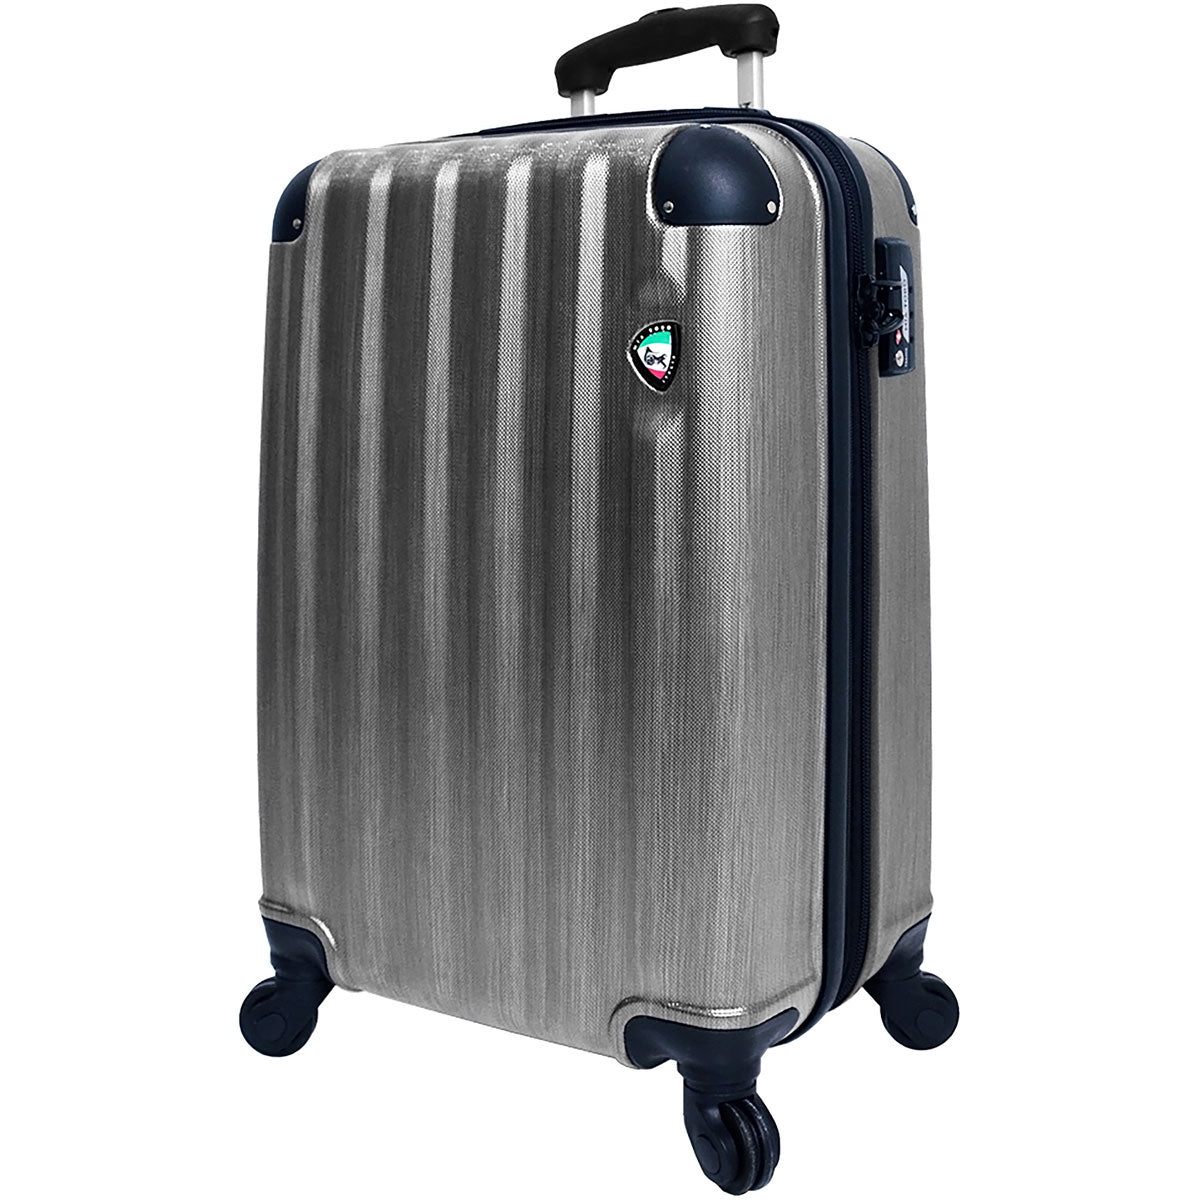 Mia Toro Lega Spazzolato Hardside 29in Spinner - Luggage Factory